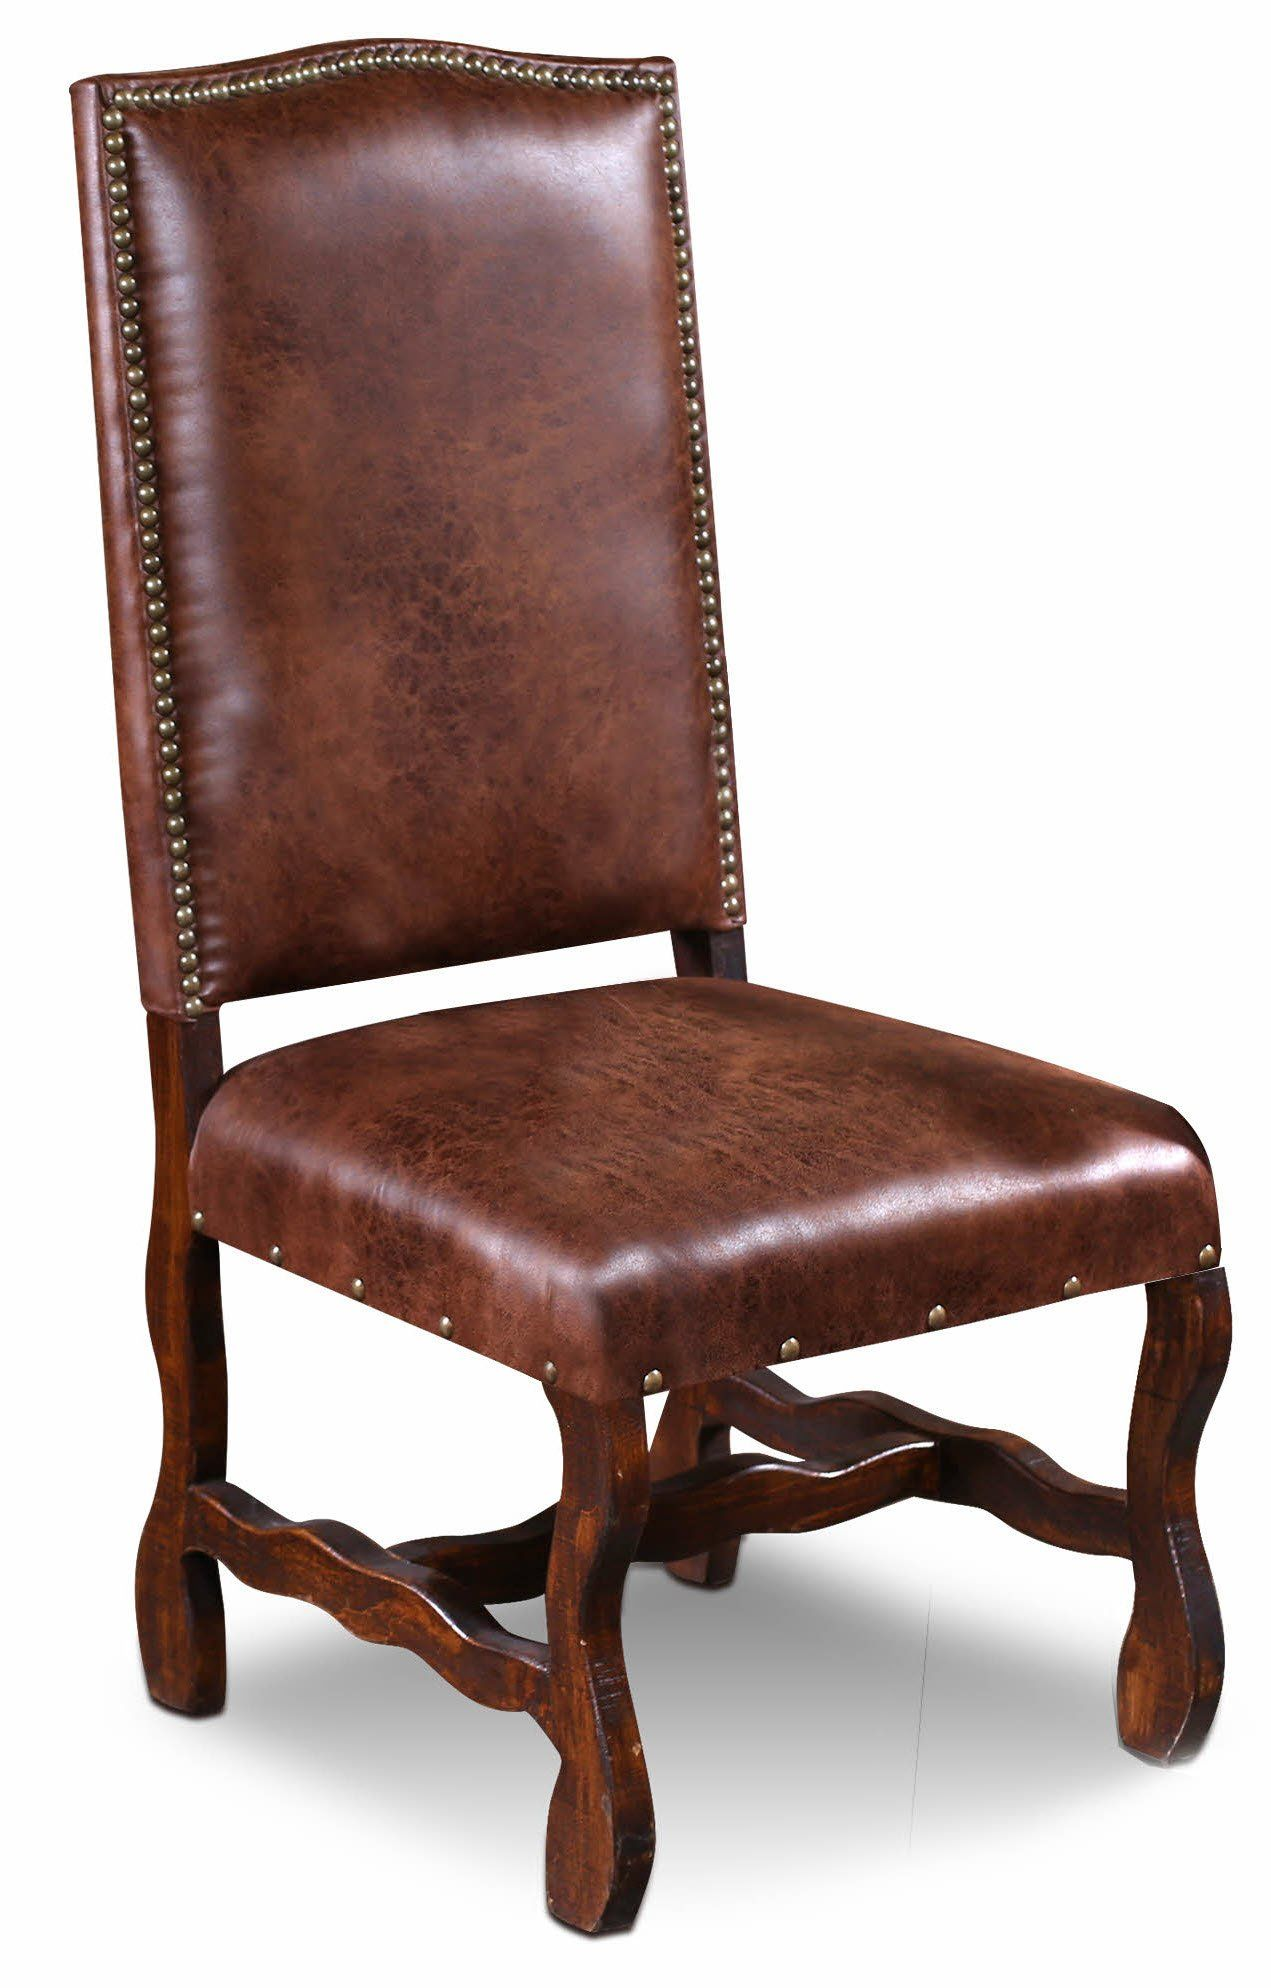 Manor Dining Chair Leather Dining Chairs Dining Chairs Rustic